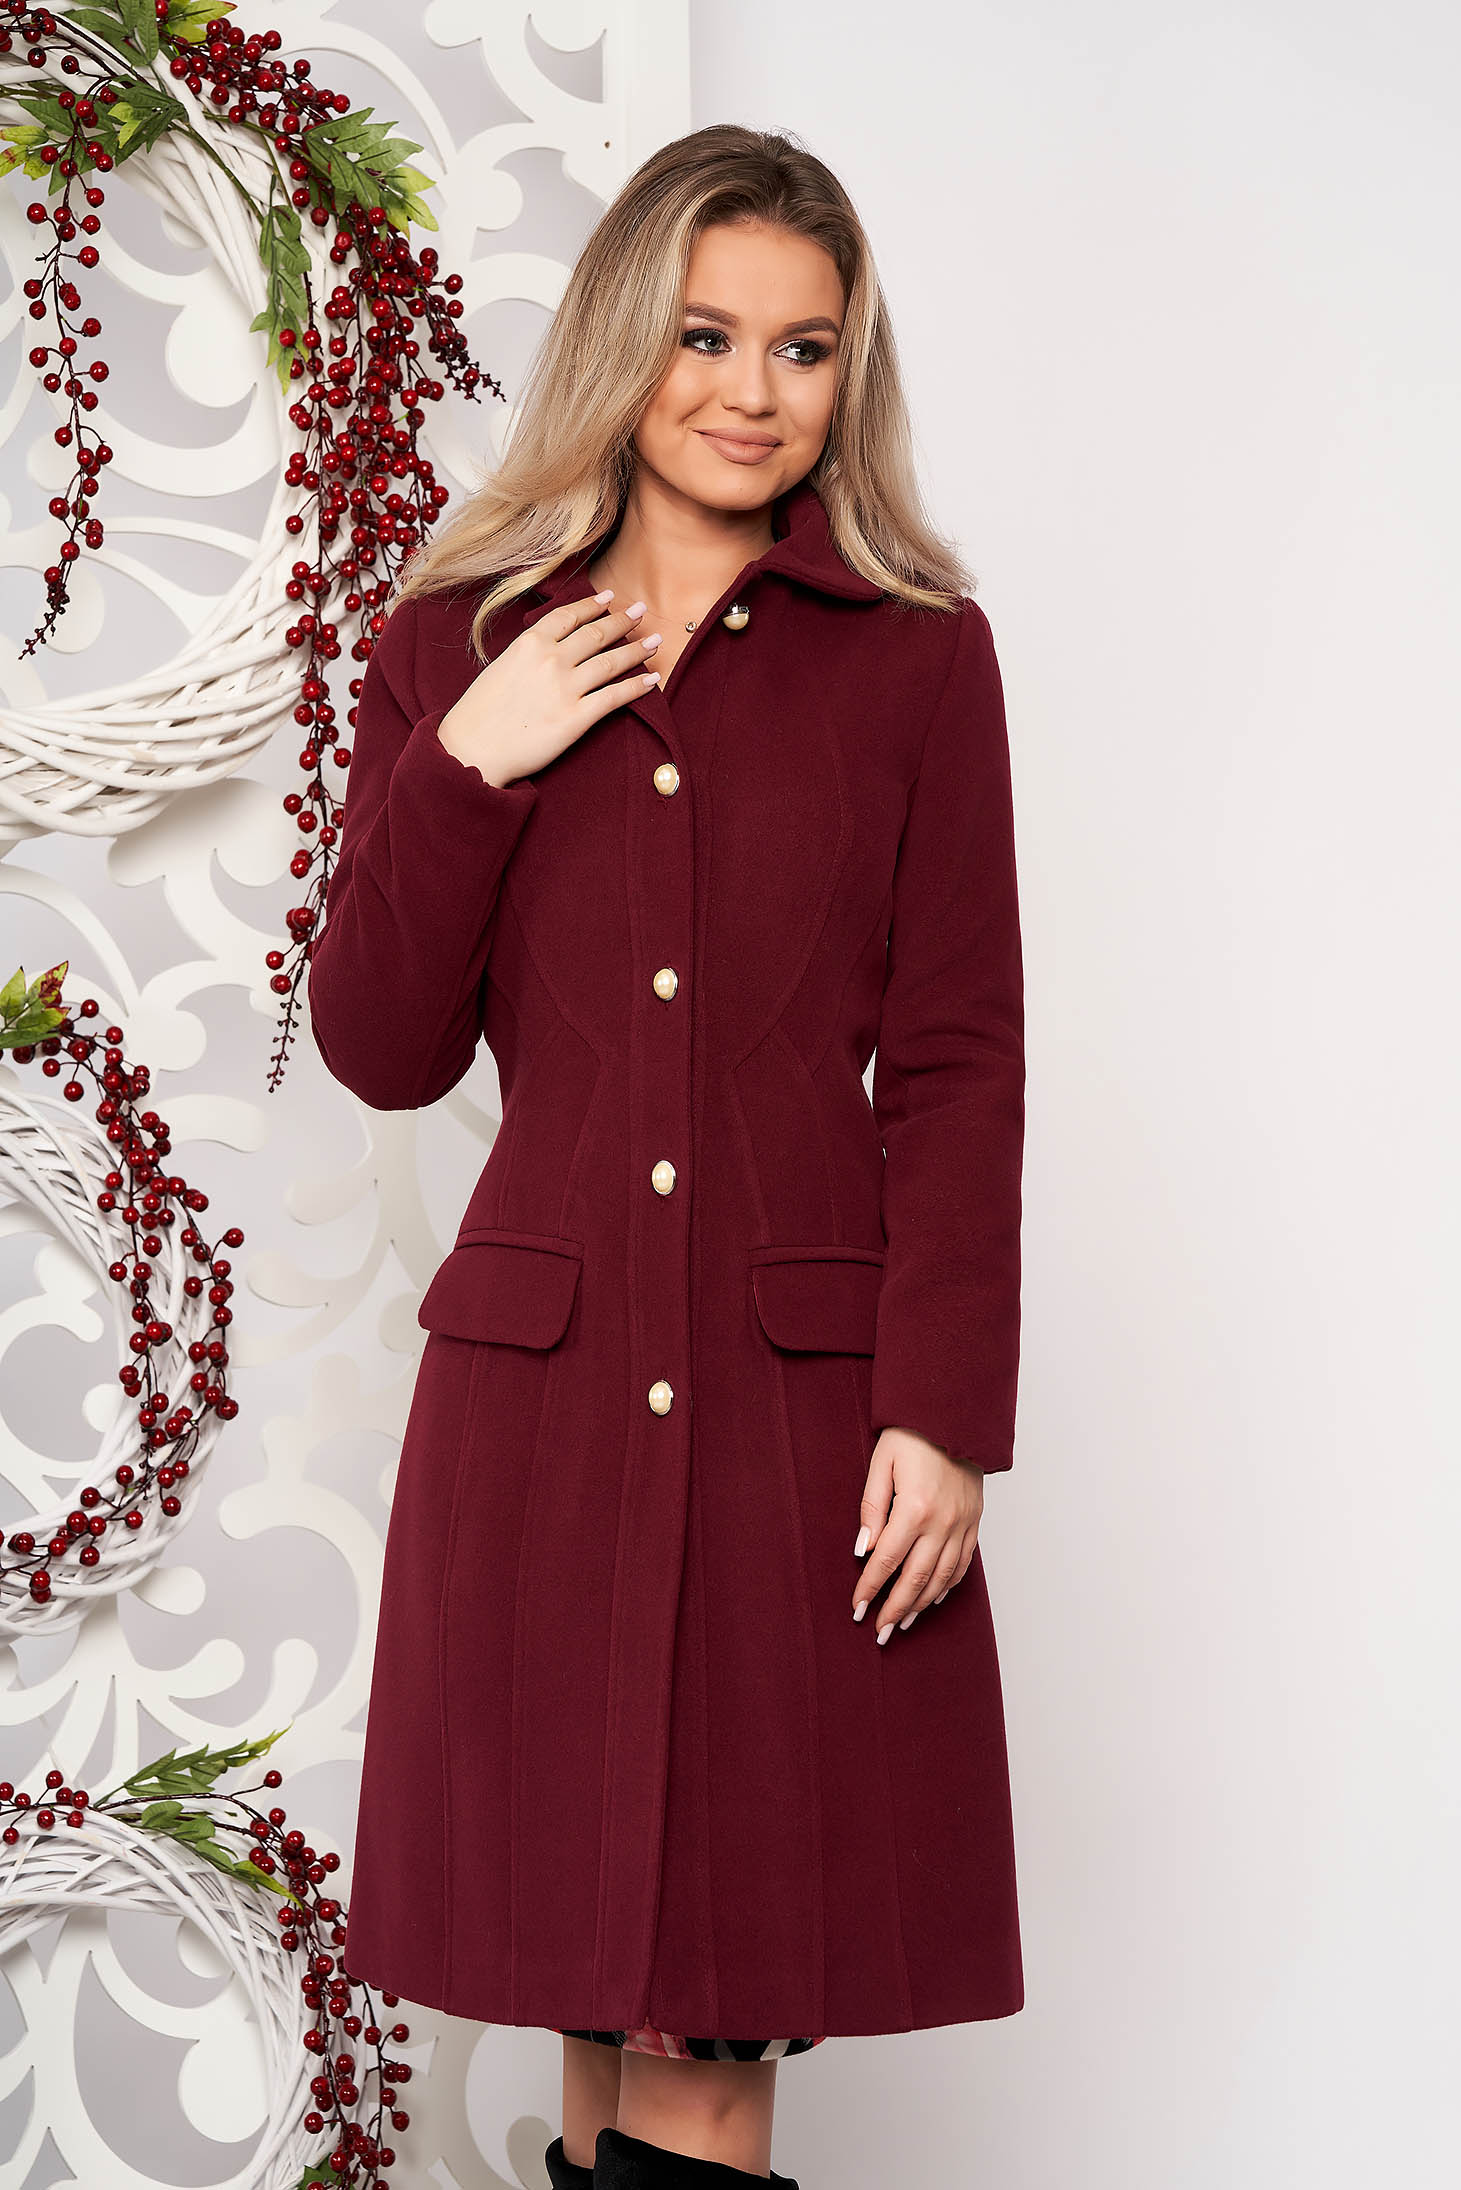 Burgundy office coat from thick fabric with inside lining arched cut